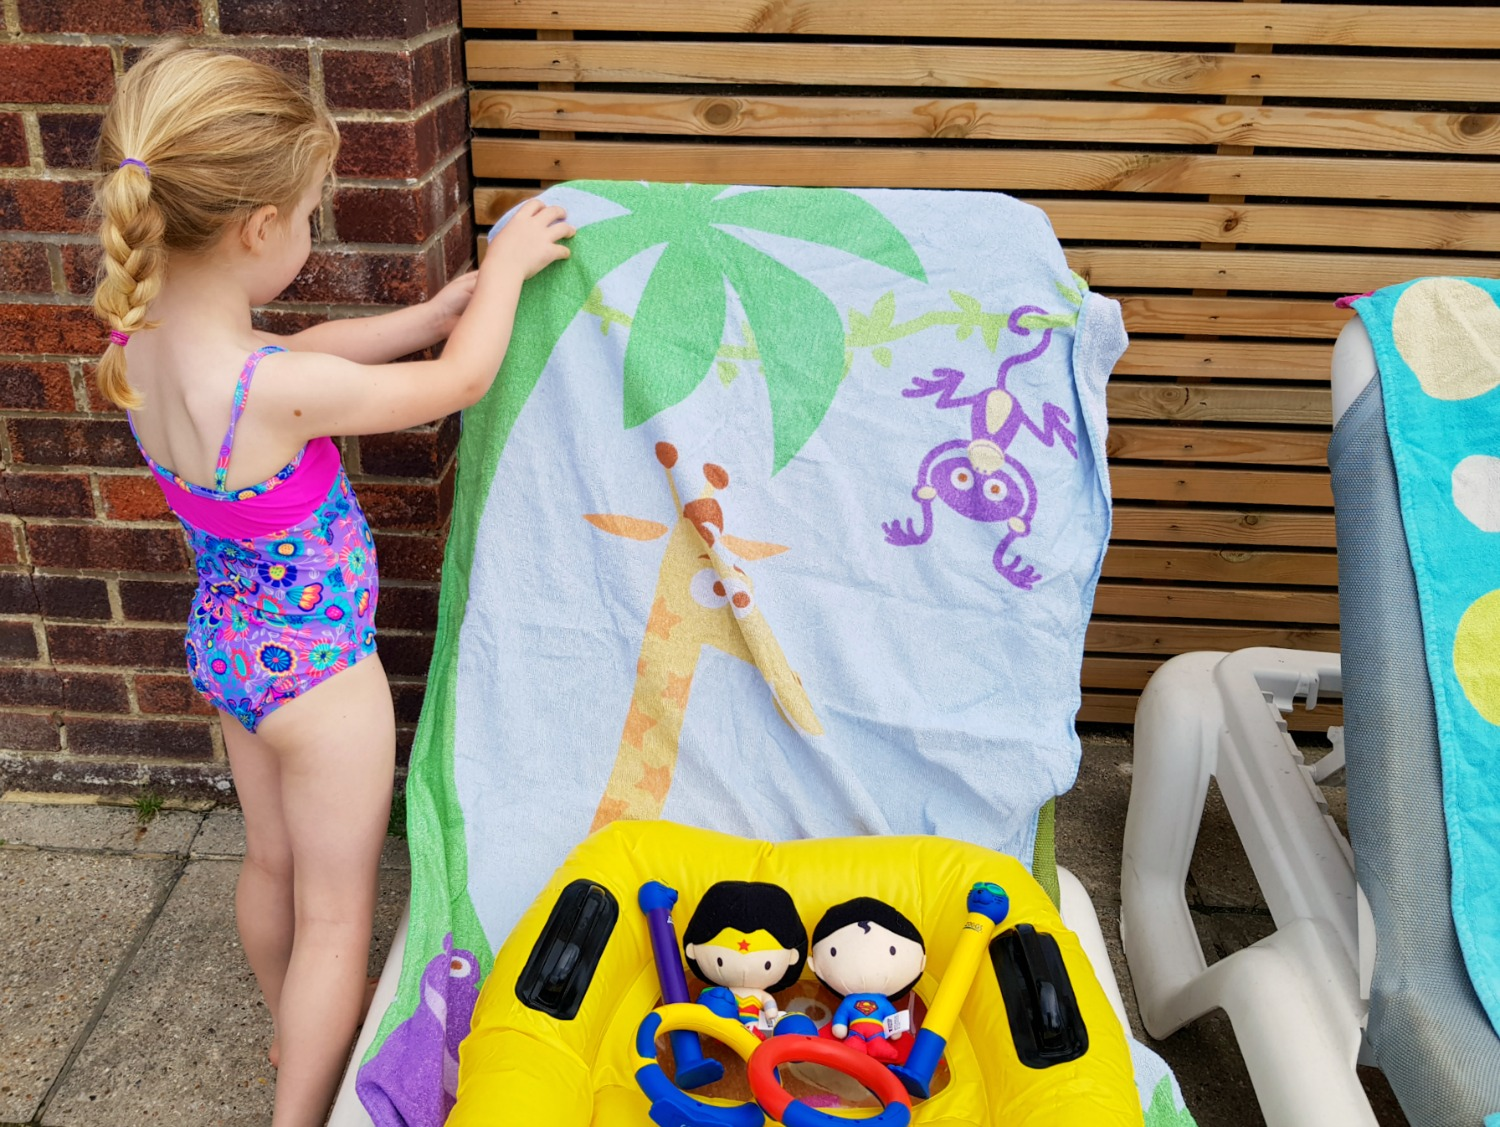 307c4010c0 Helping kids' water confidence with Zoggs swimwear - mummytravels